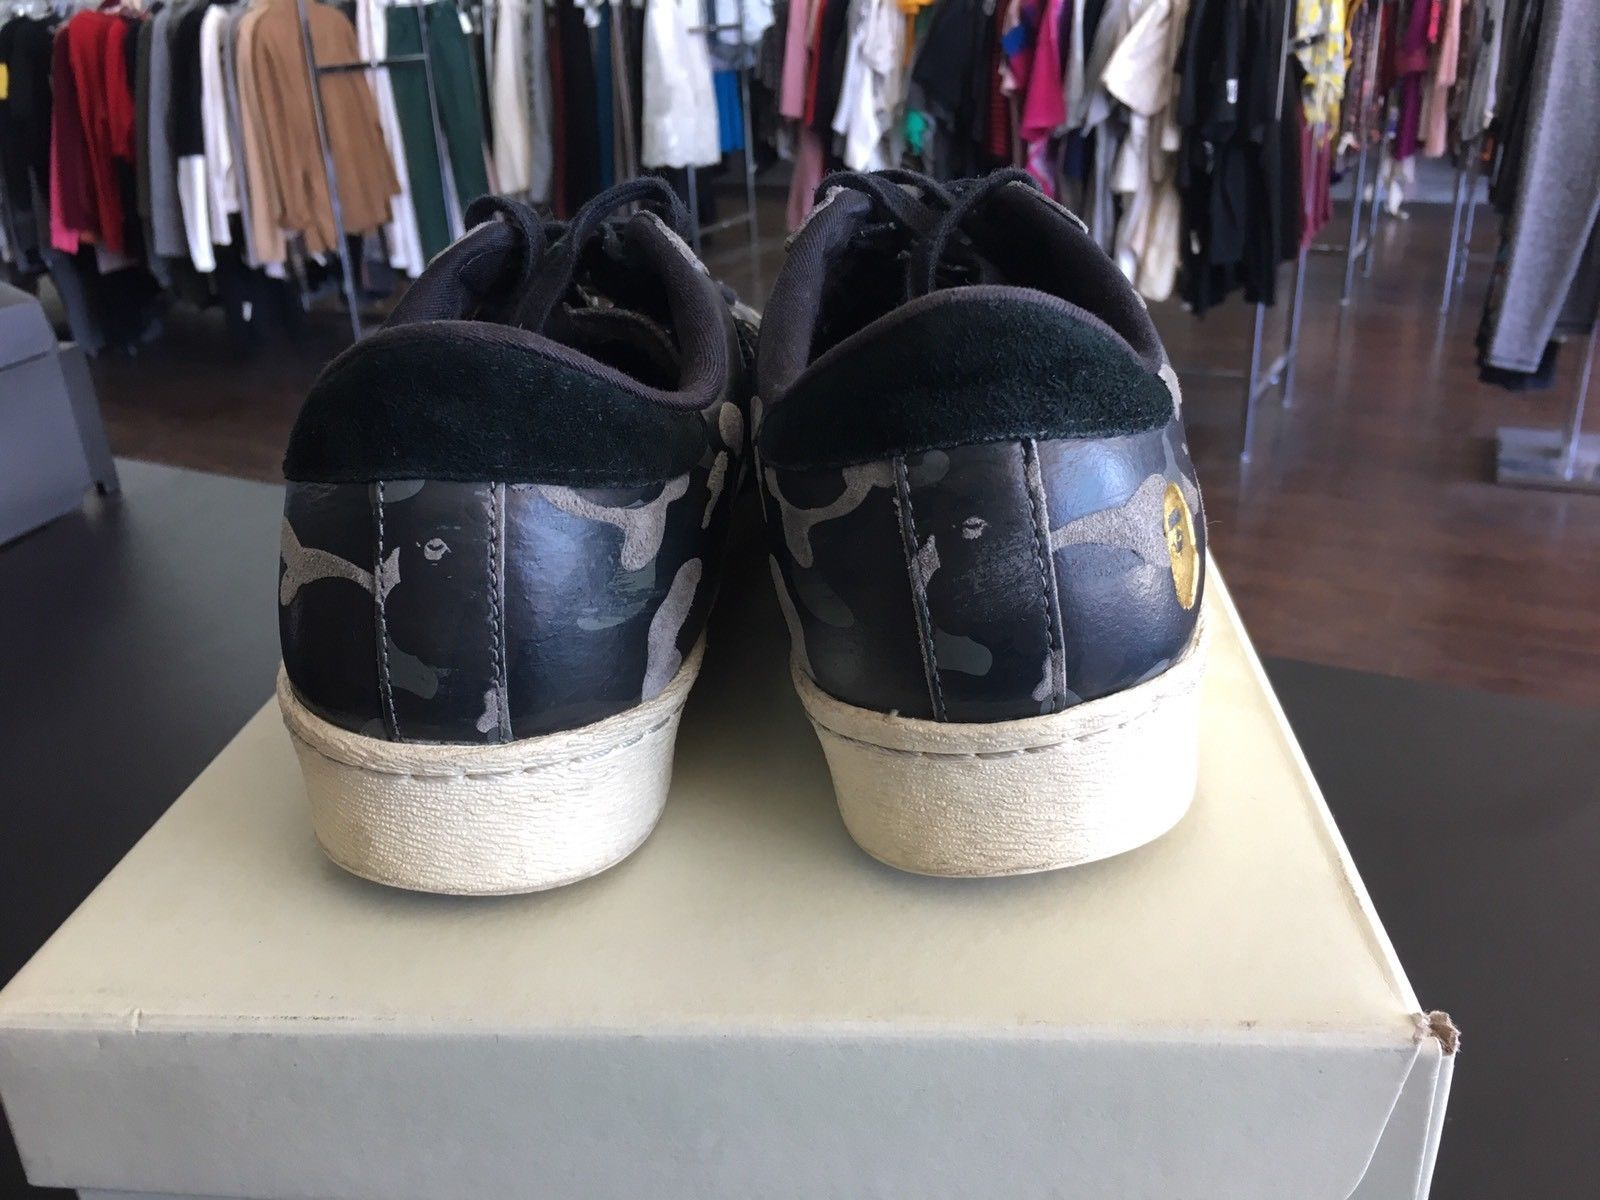 sports shoes 09060 e87fb adidas Superstar 80s Undftd Bape Black Camo Size 9 S74774 White. Find this  Pin and ...